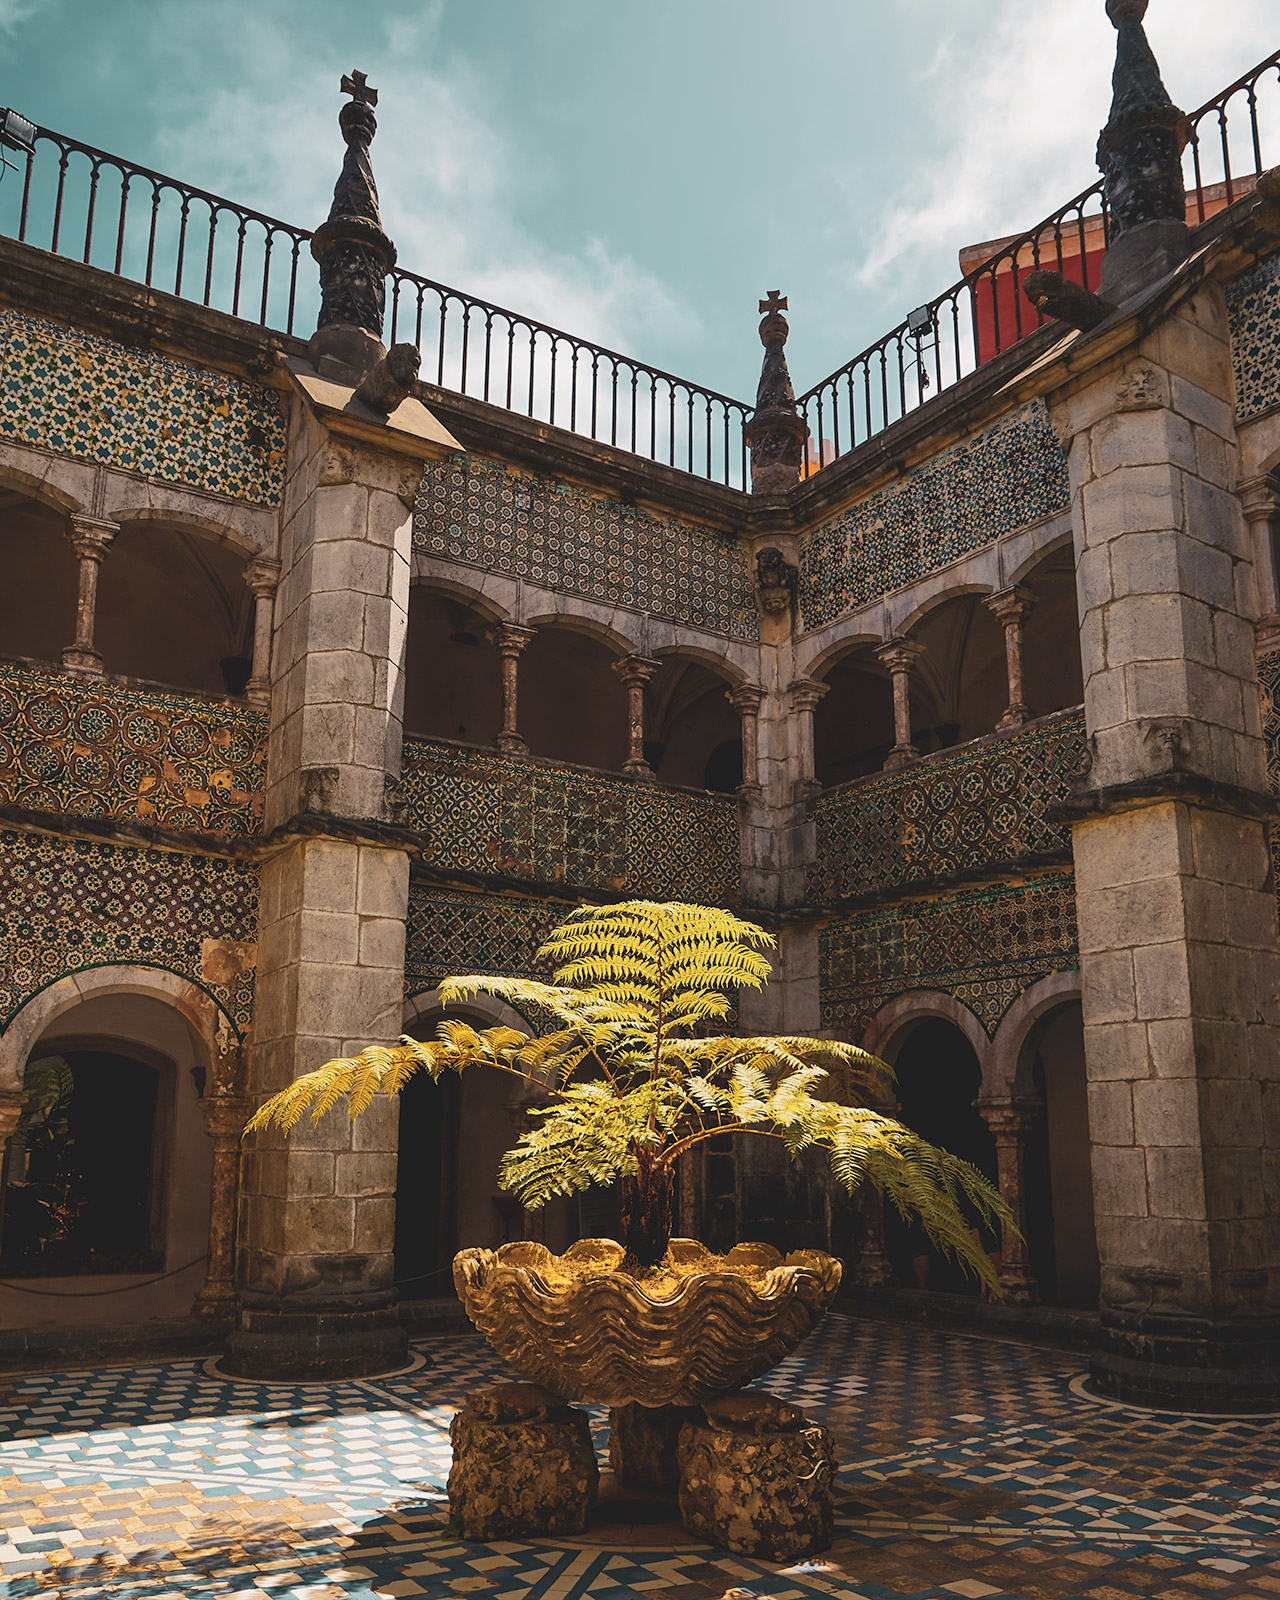 The courtyard at the Pena Palace's cloister.